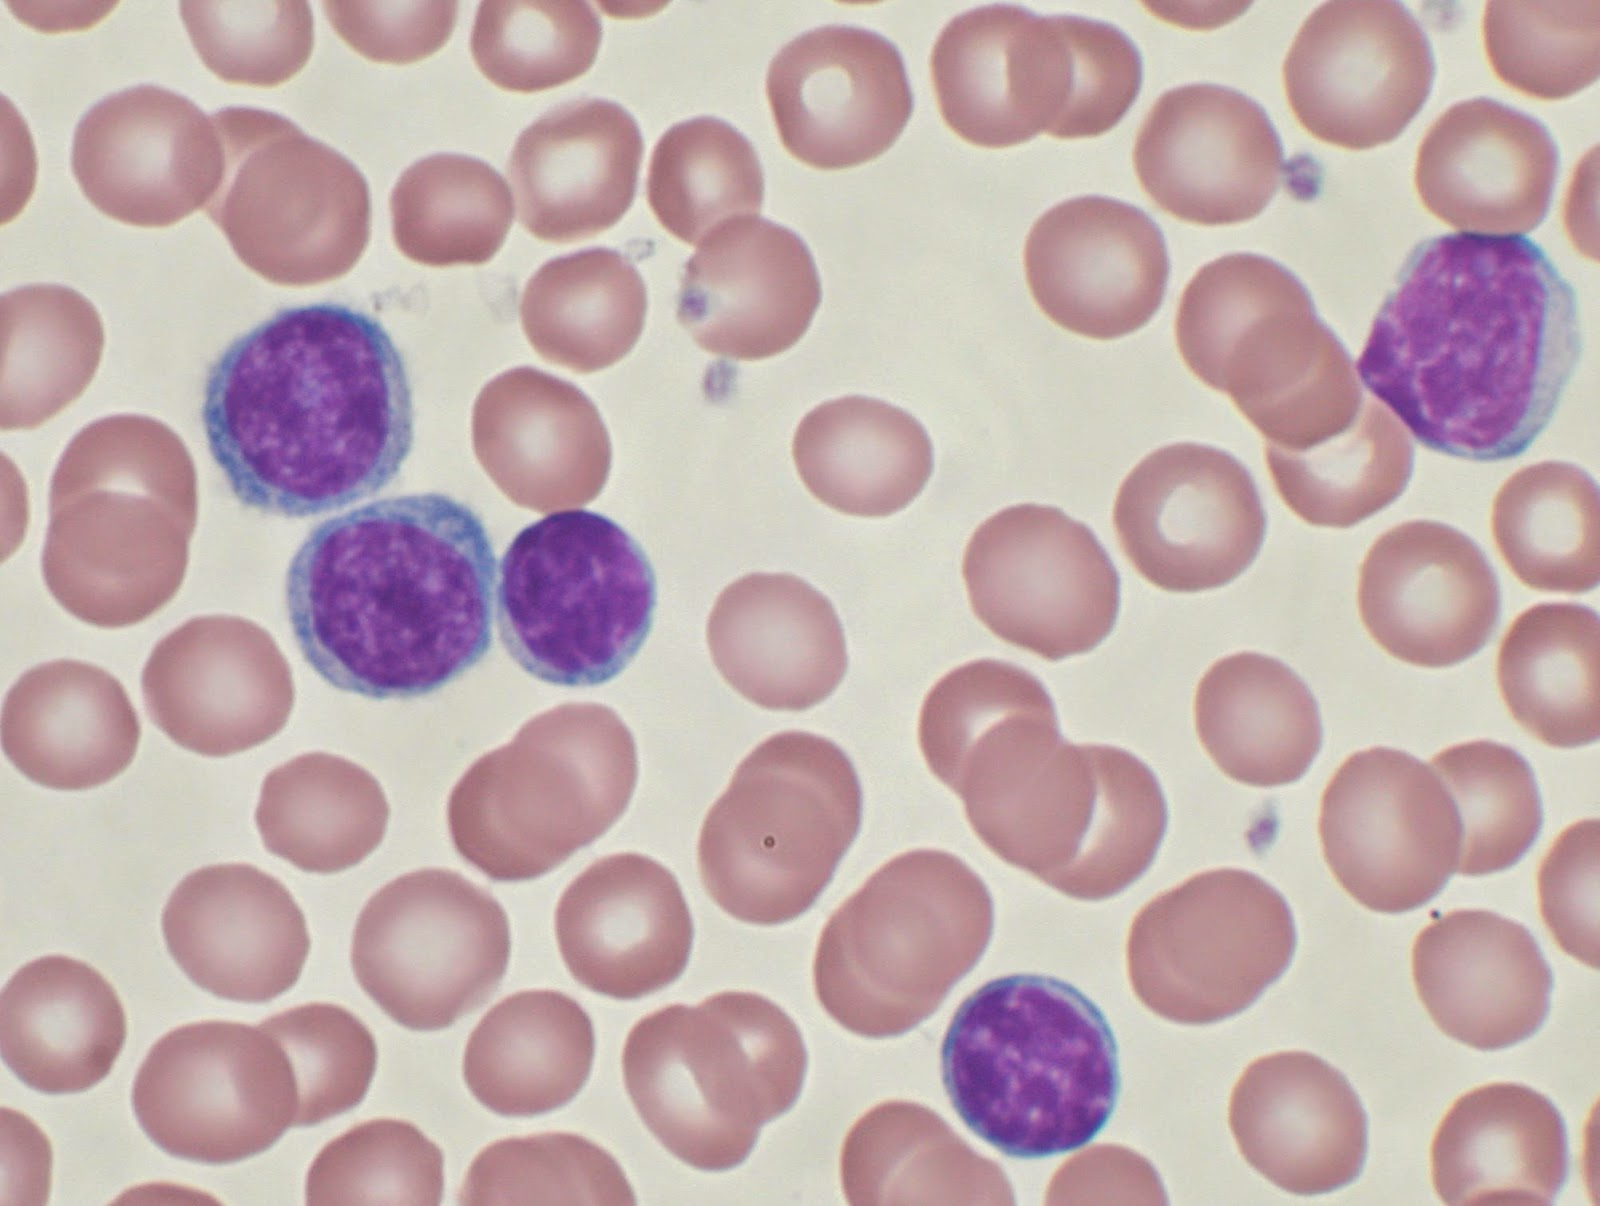 Peripheral blood smear showing CLL cells